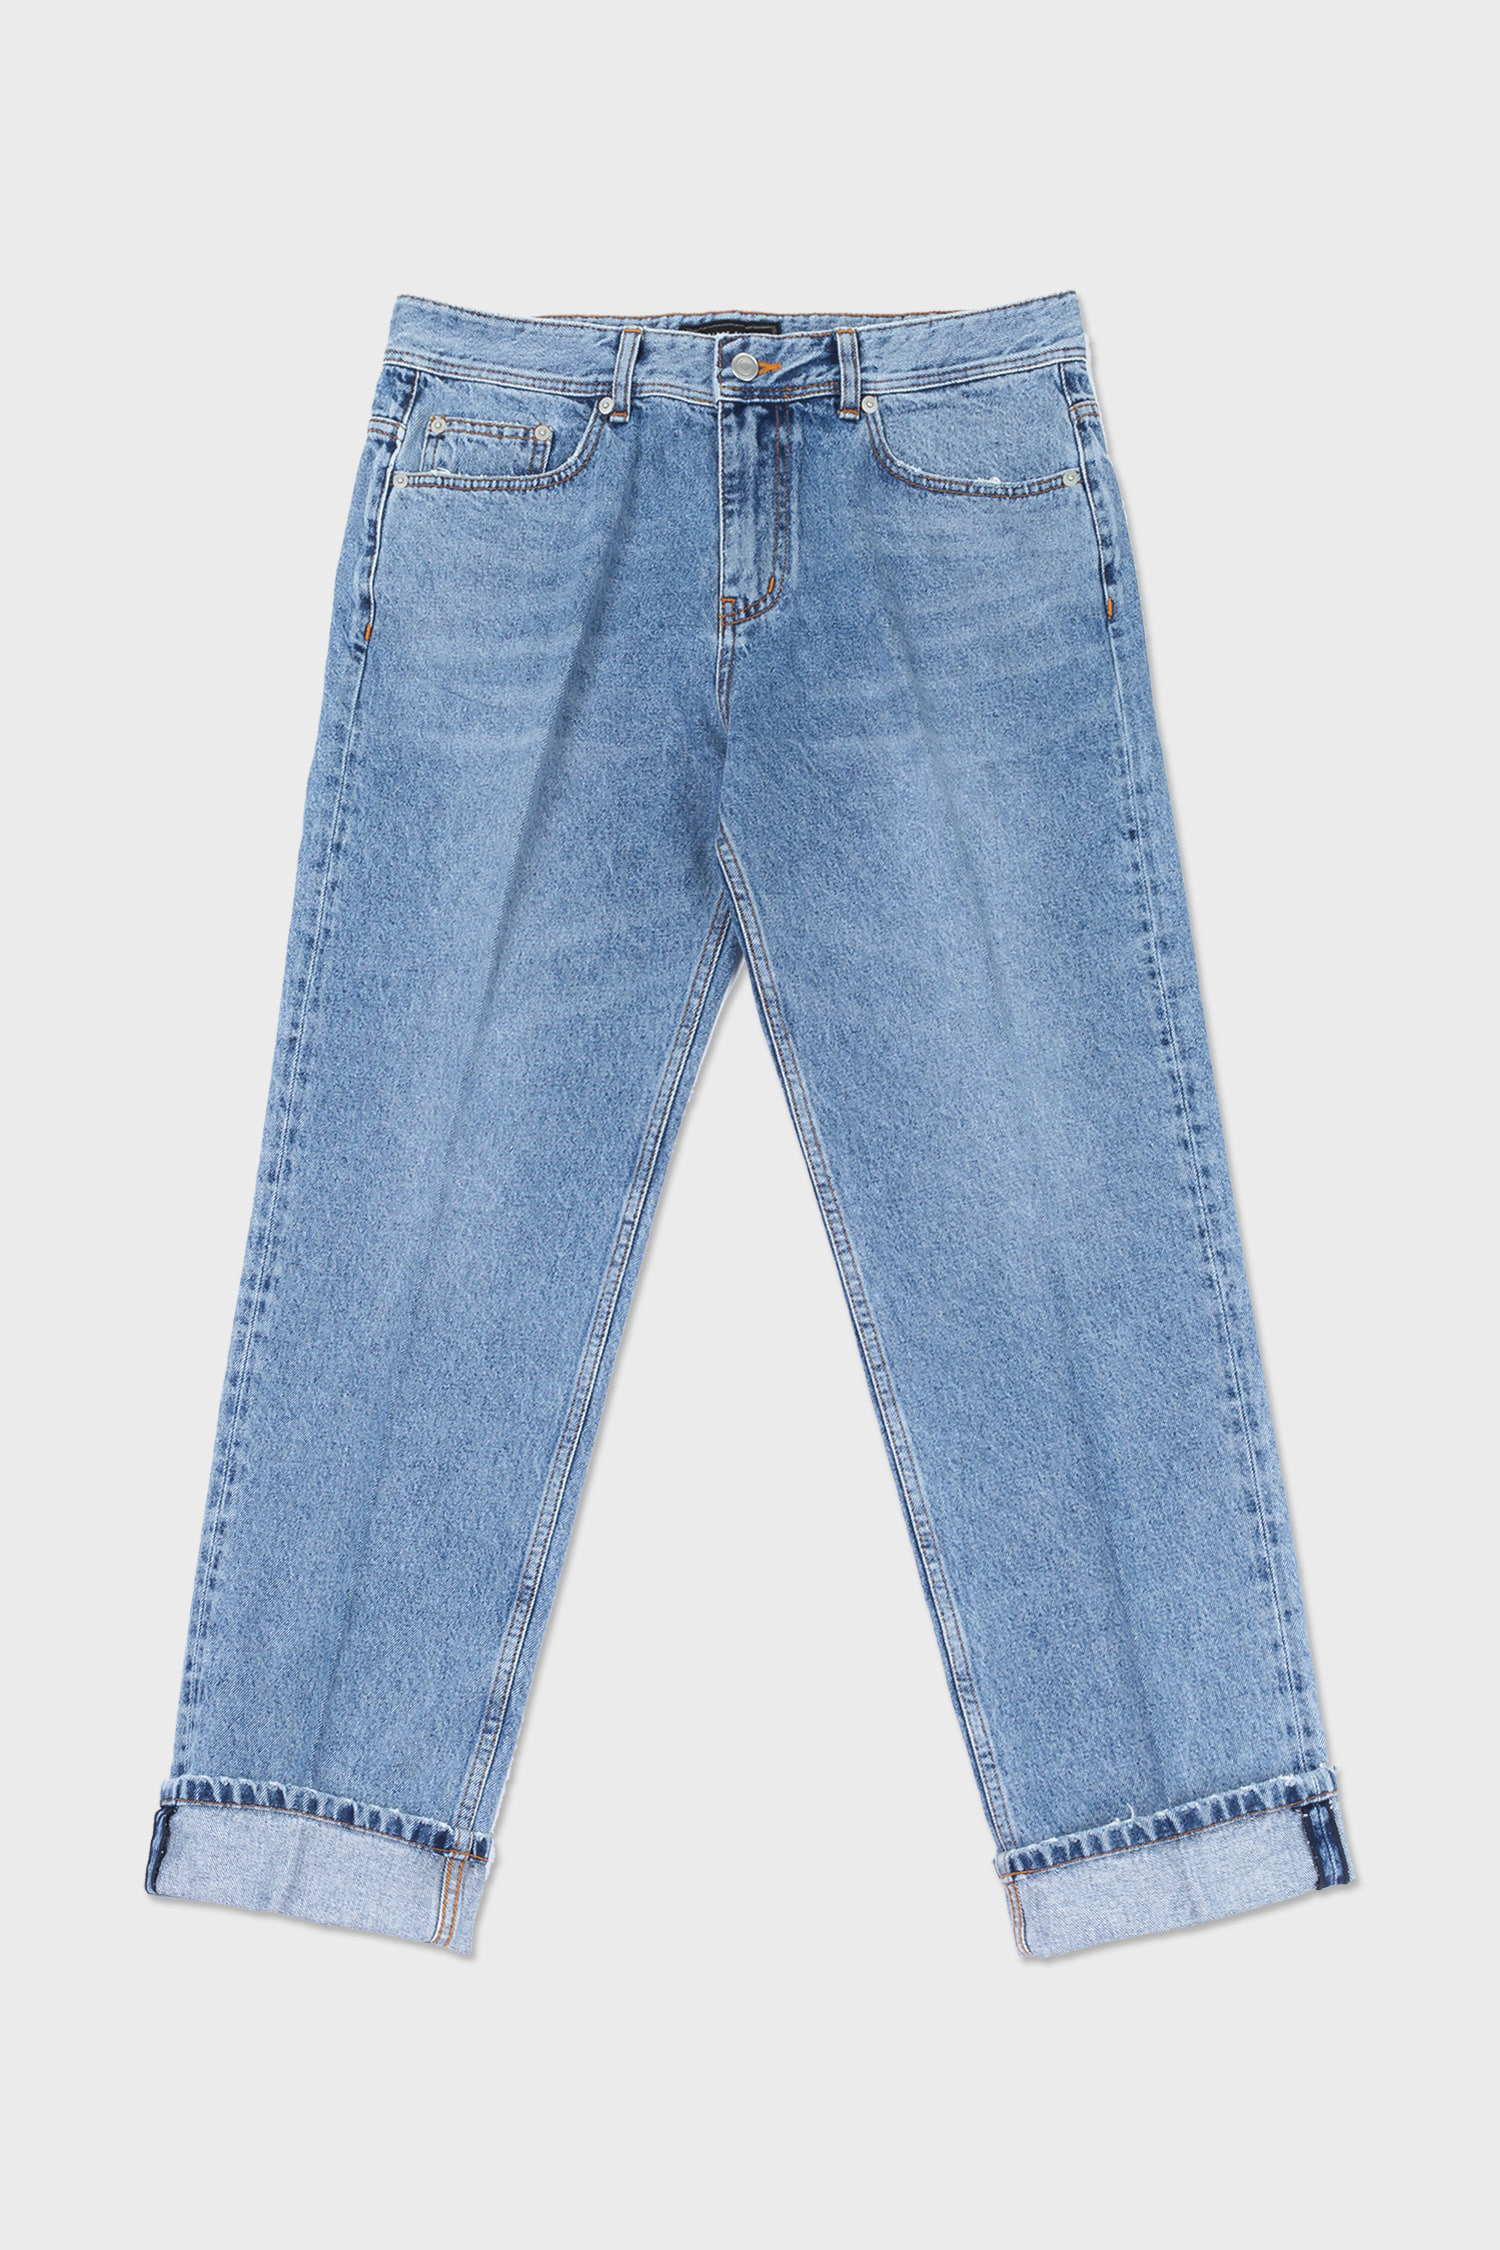 easygoing creased jeans (flour blue)